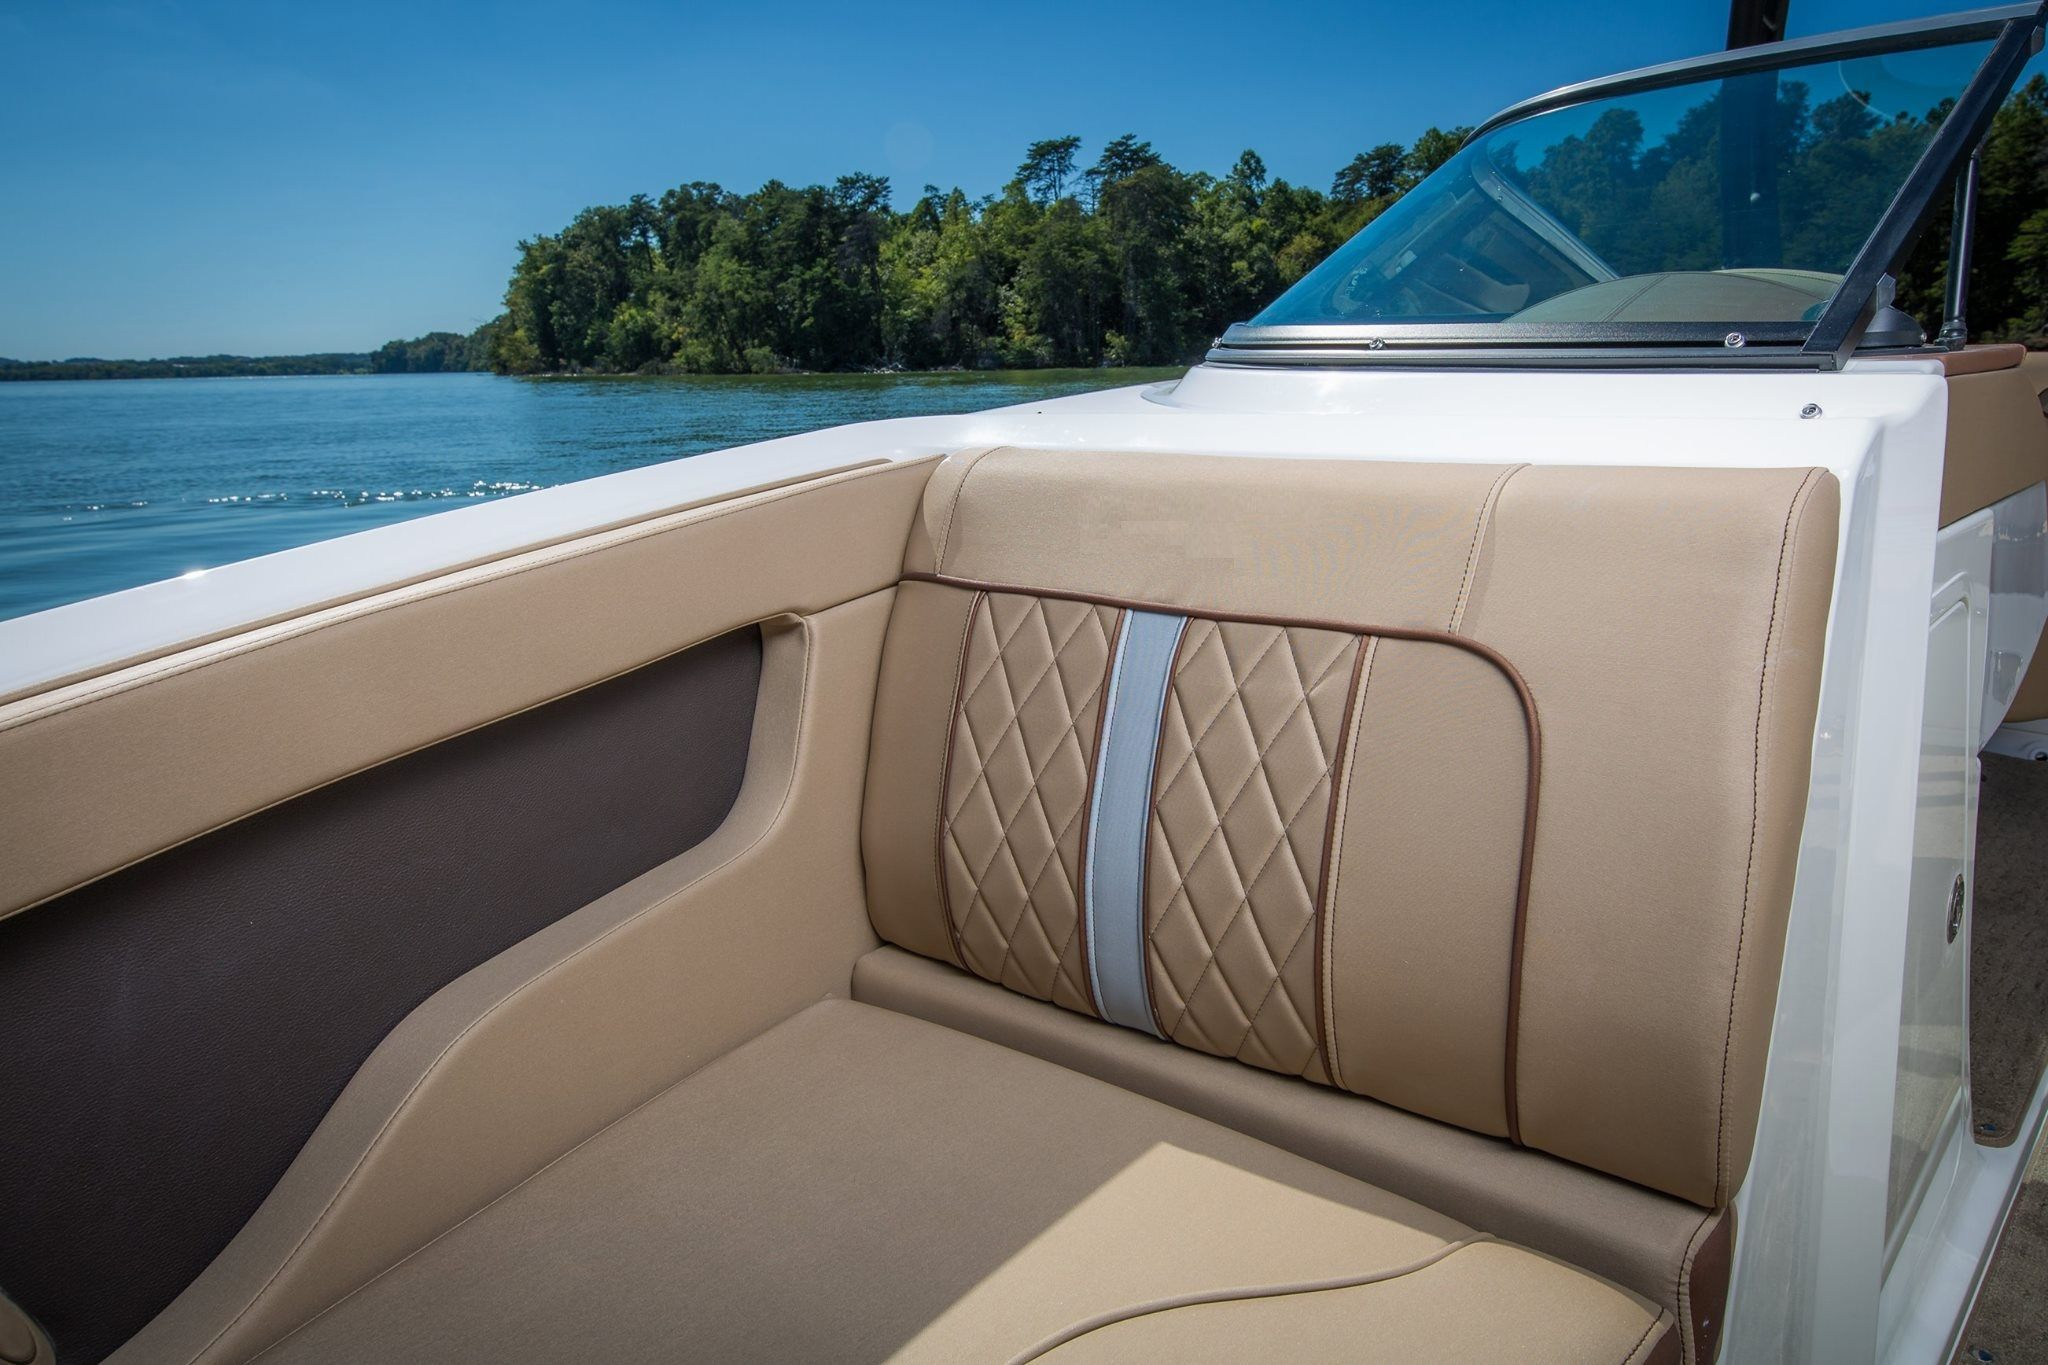 Upholstery, Tops, Covers and Flooring Boat upholstery